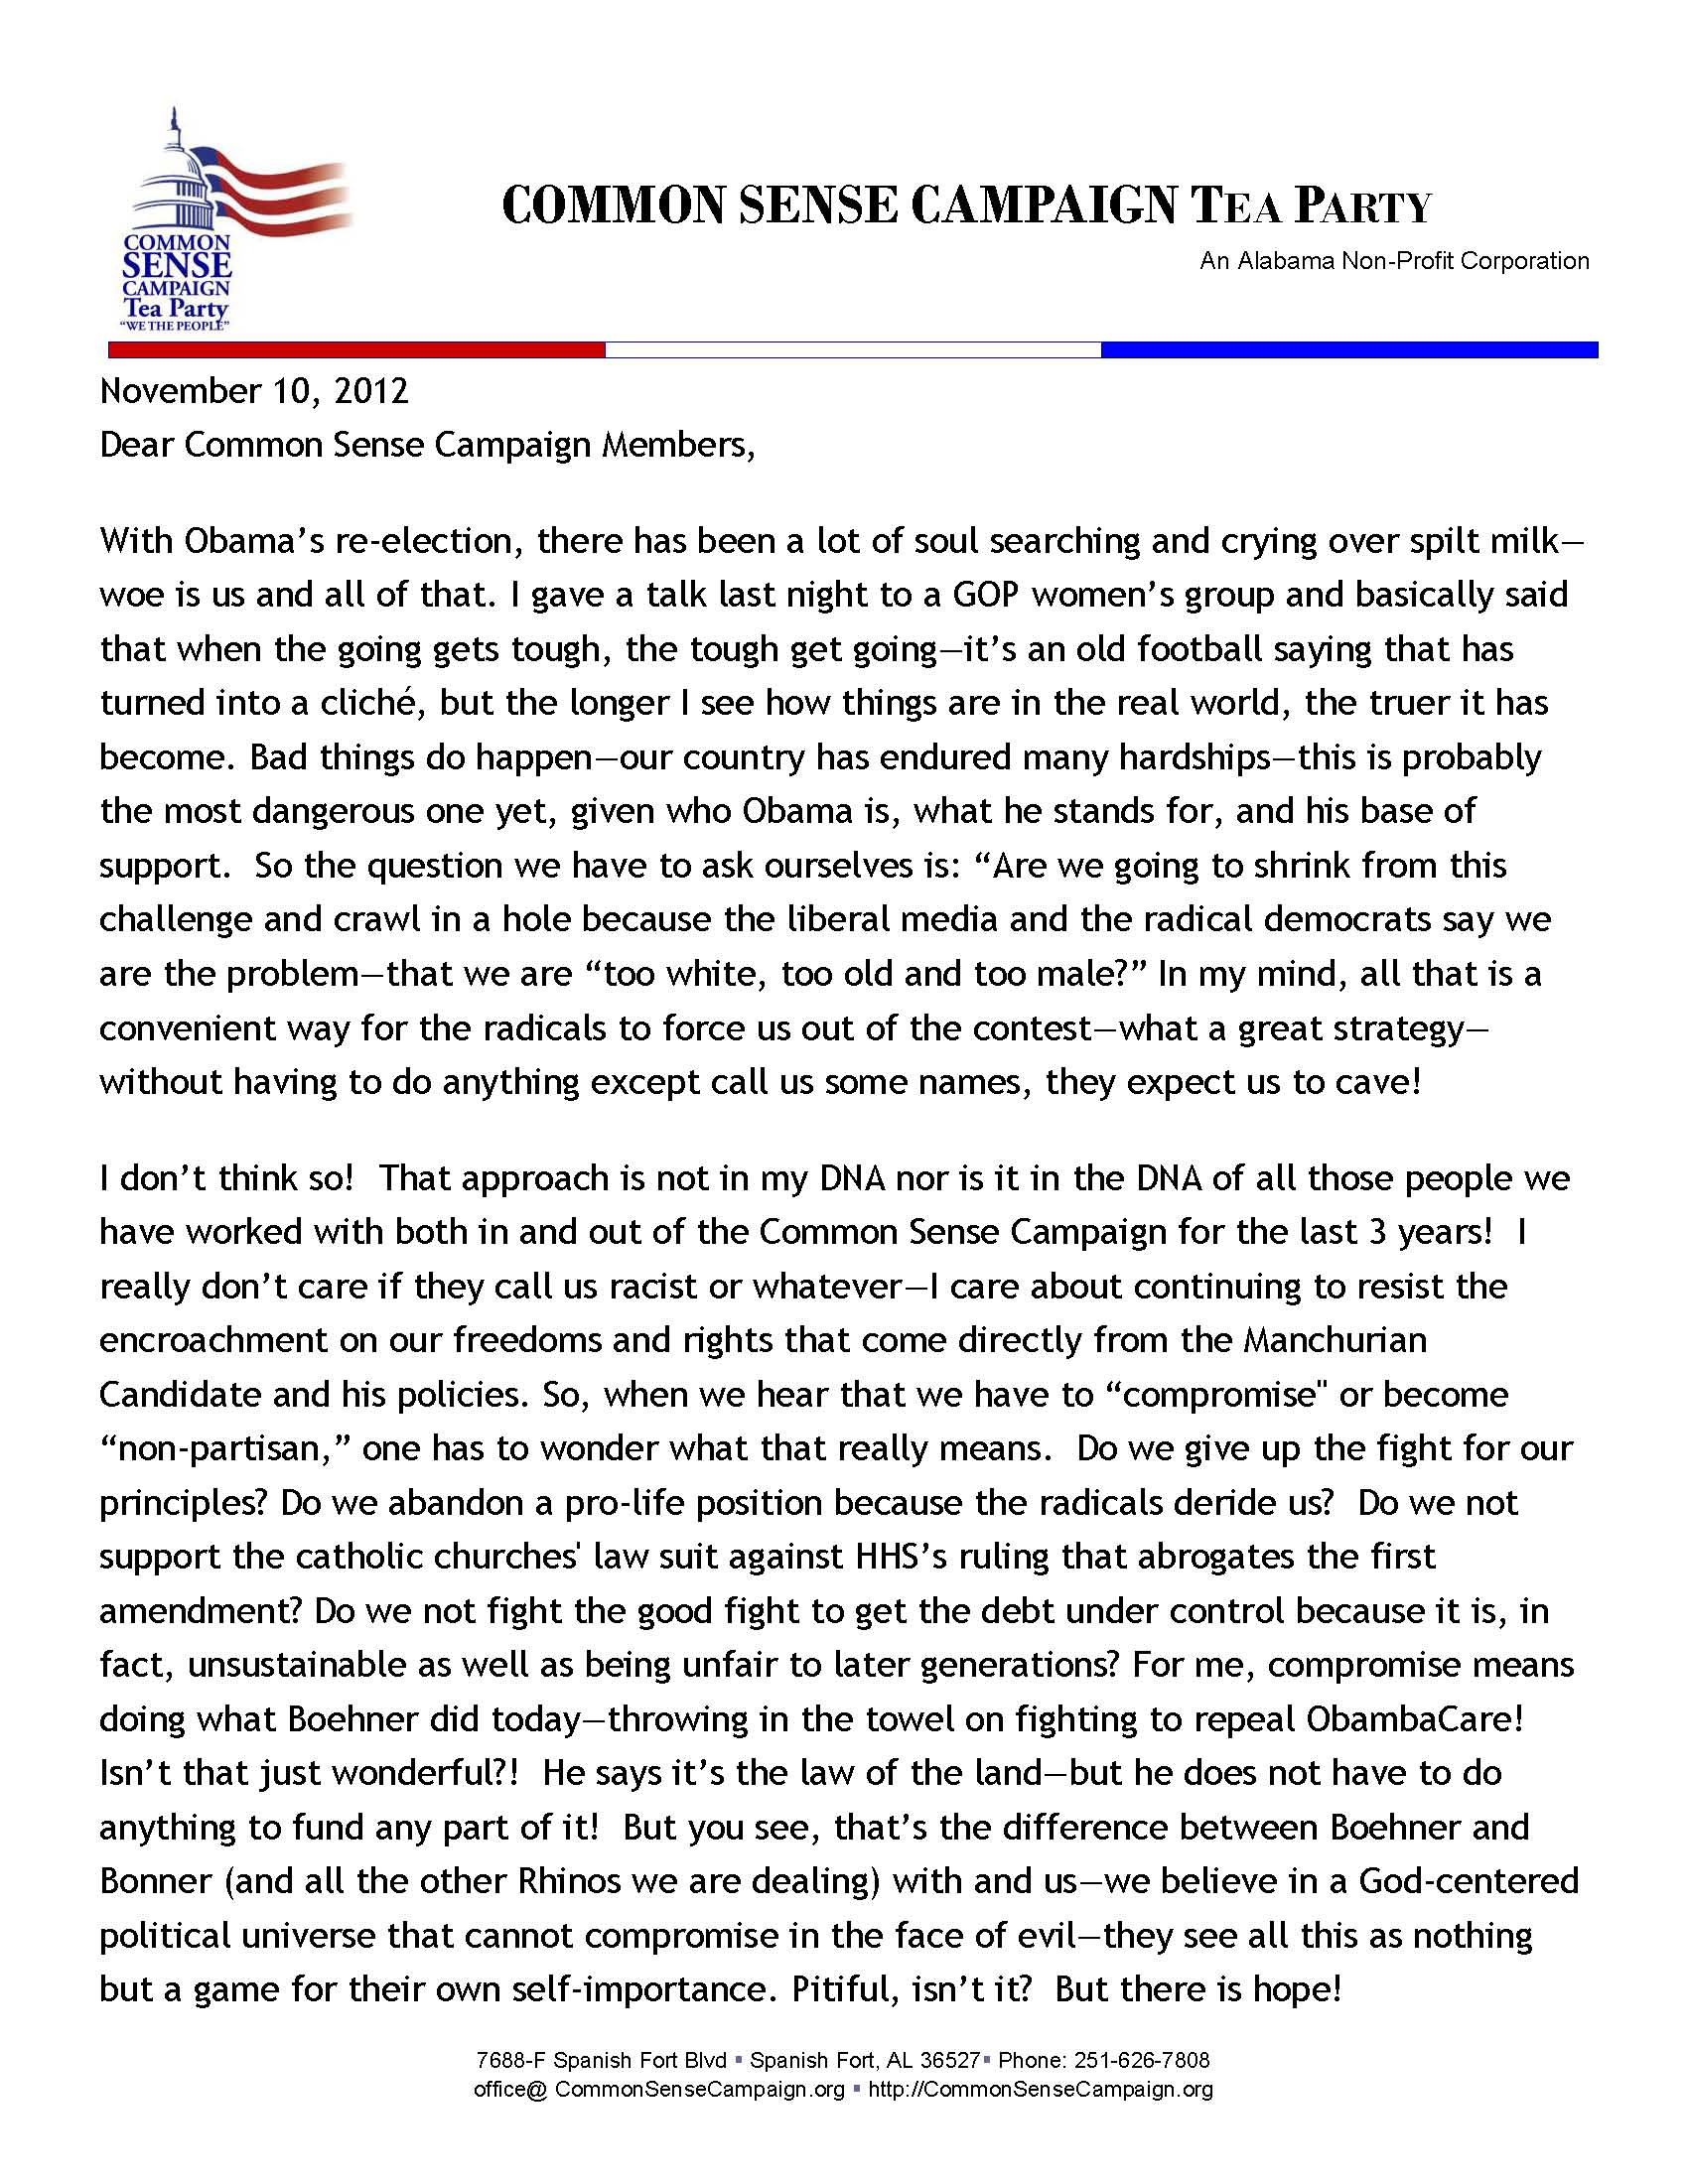 CSCTeaParty_Letter_to_Membership-11-10-12_Page_1